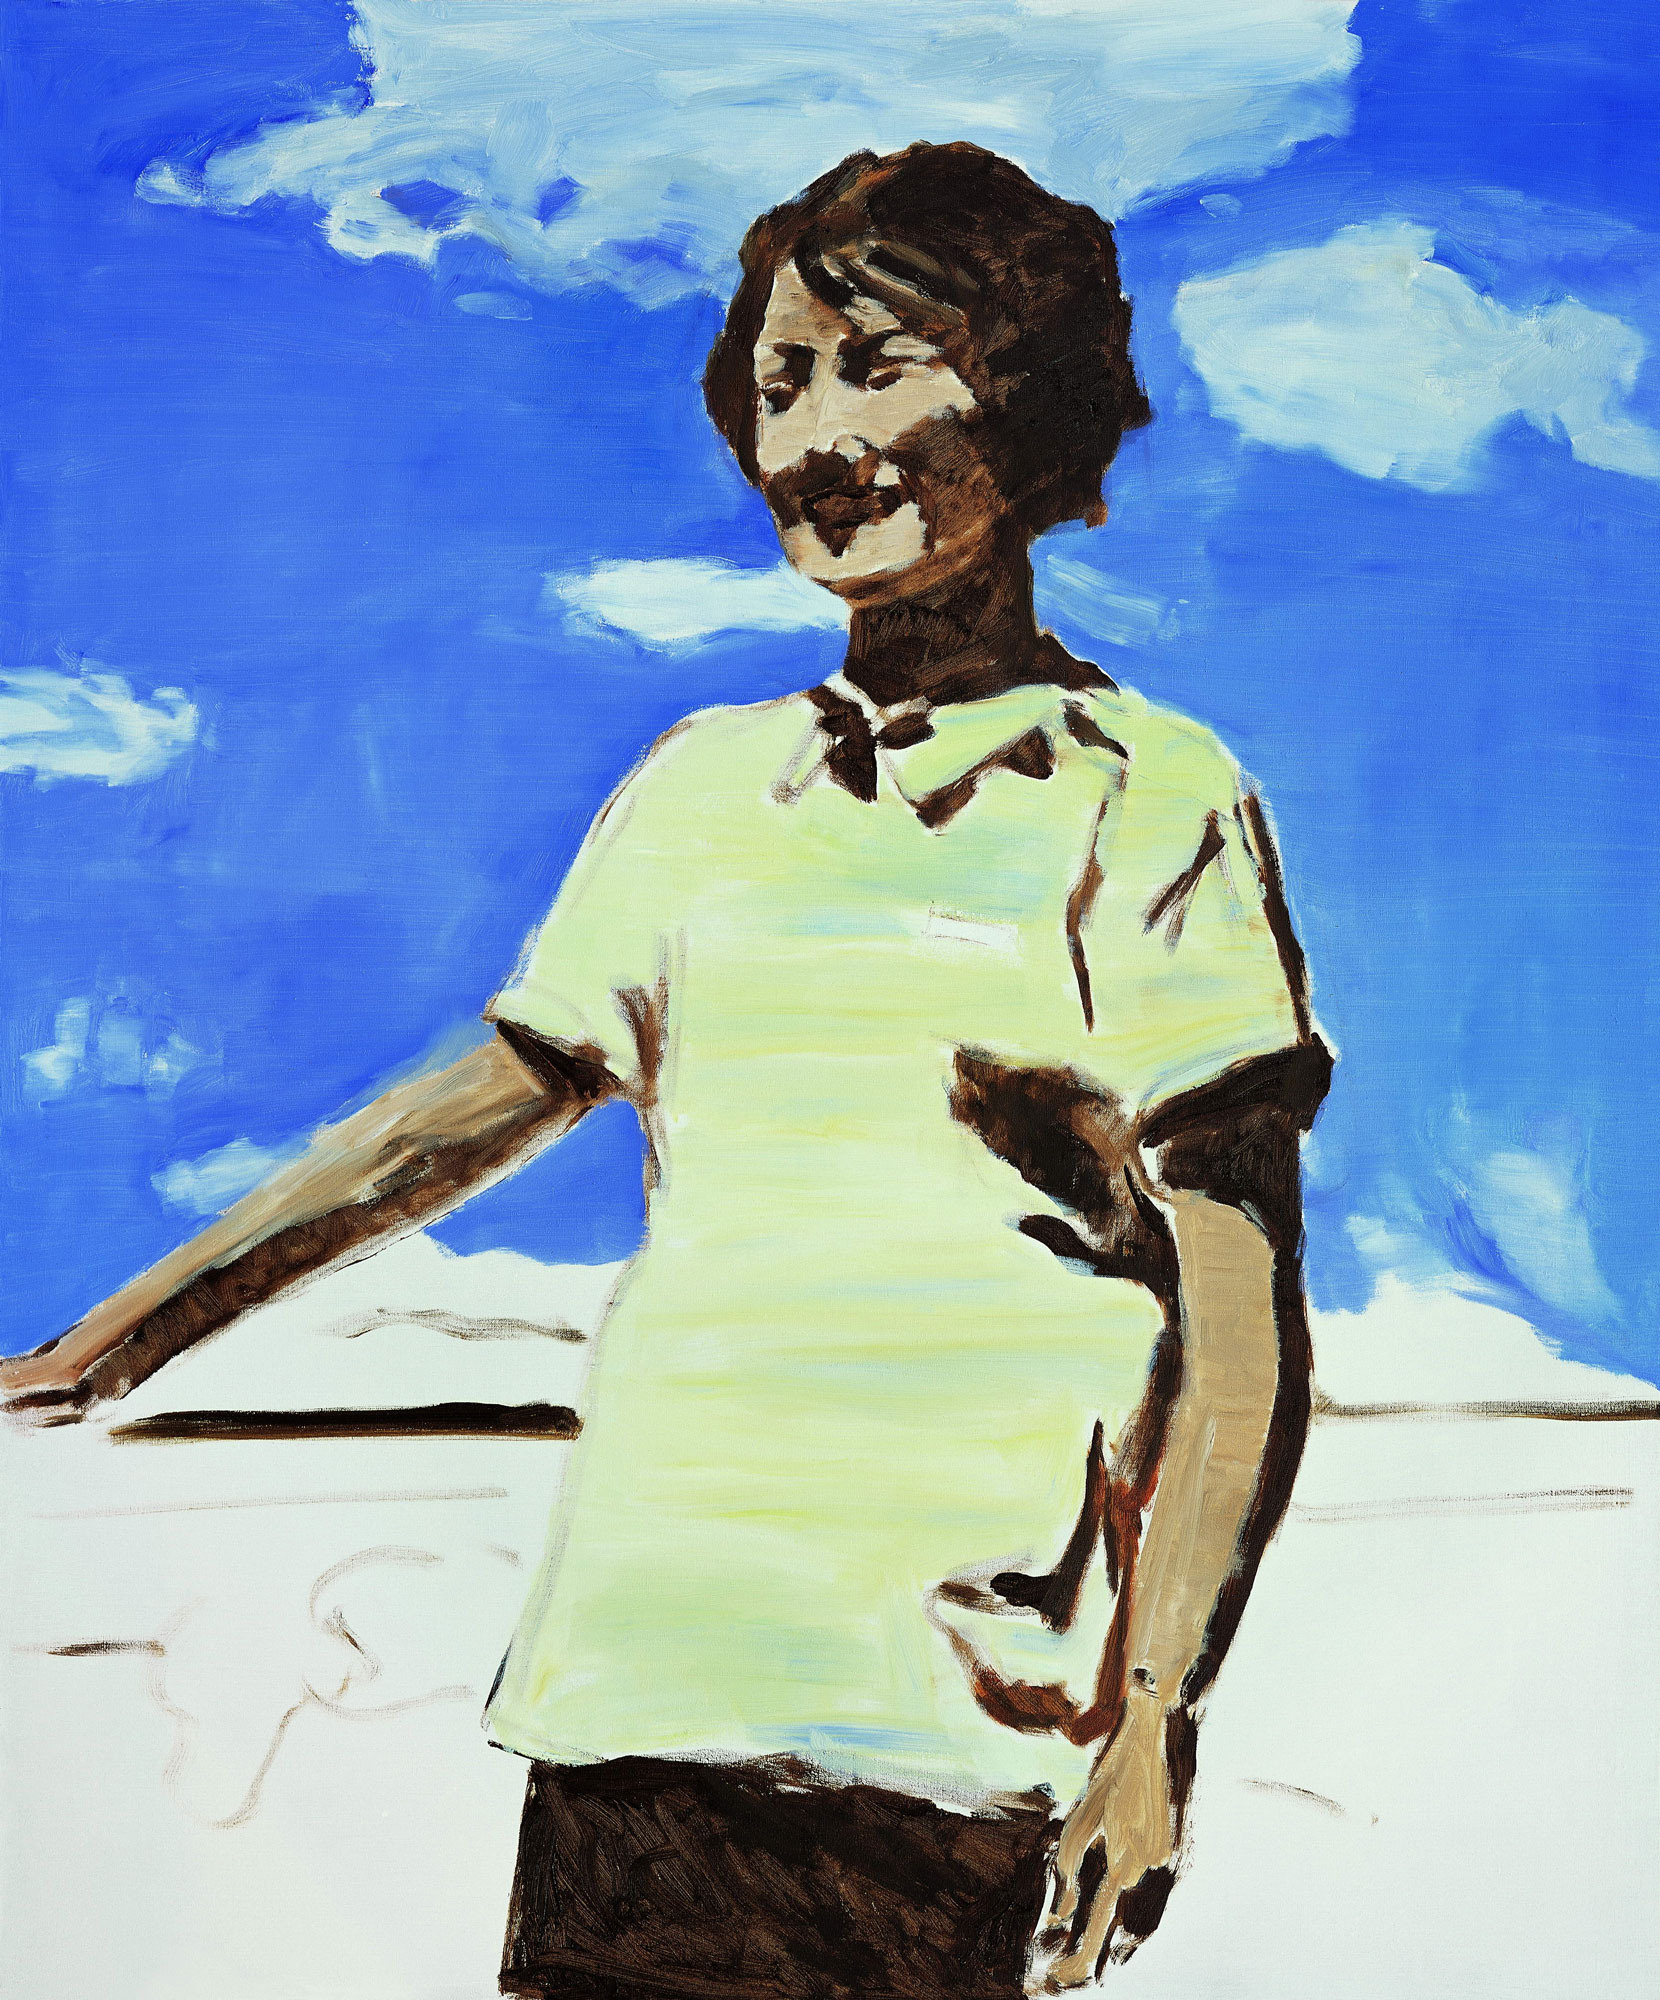 ZHAO GANG   .   The Good Times , 2007. Oil on canvas. 61 x 51 3/16 inches.  Courtesy of the artist and Jack Tilton Gallery